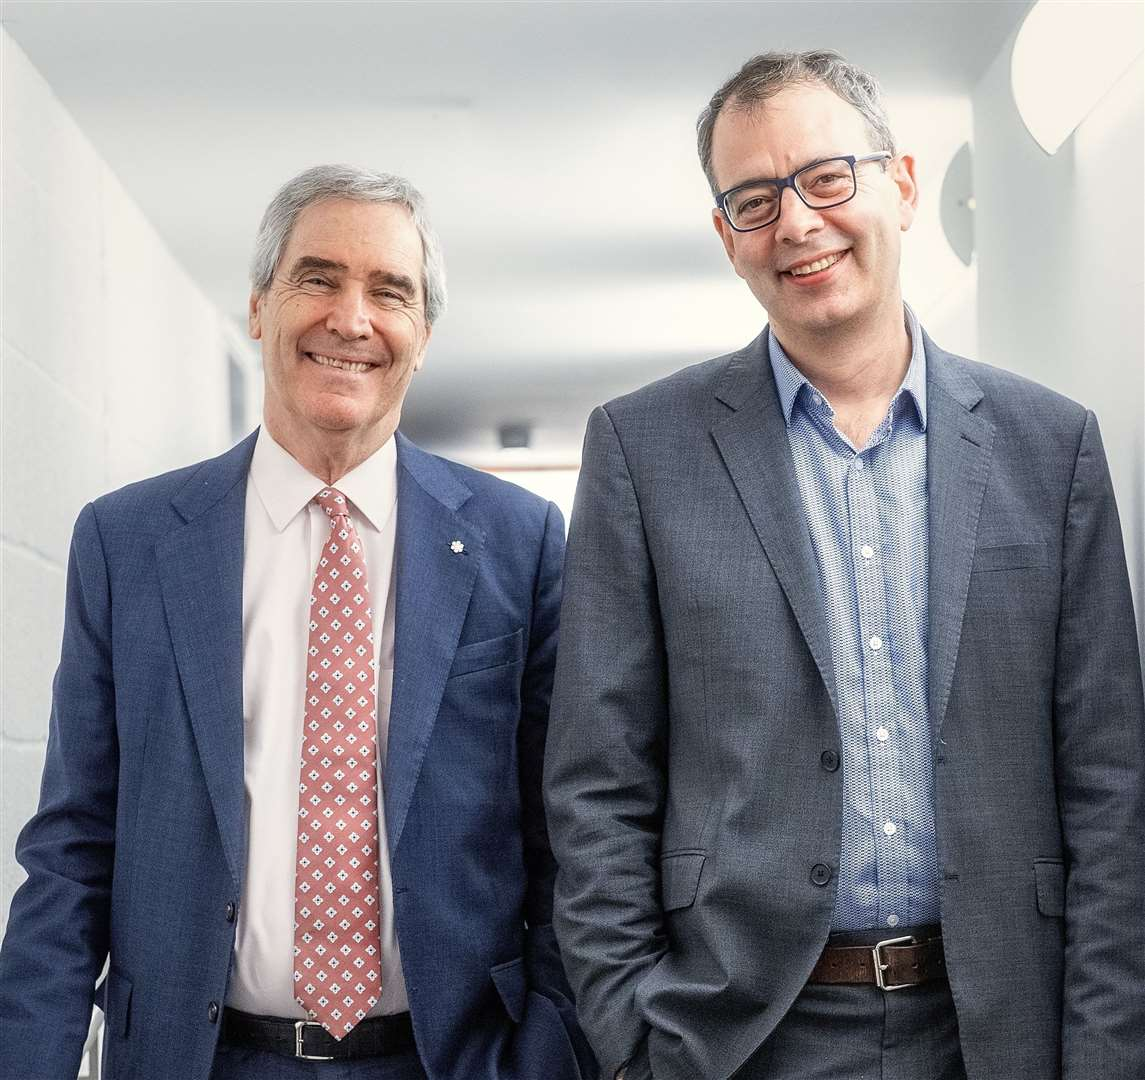 Michael Ignatieff with David Runciman at the Babbage Lecture Theatre, February 2020. Picture: Martin Bond